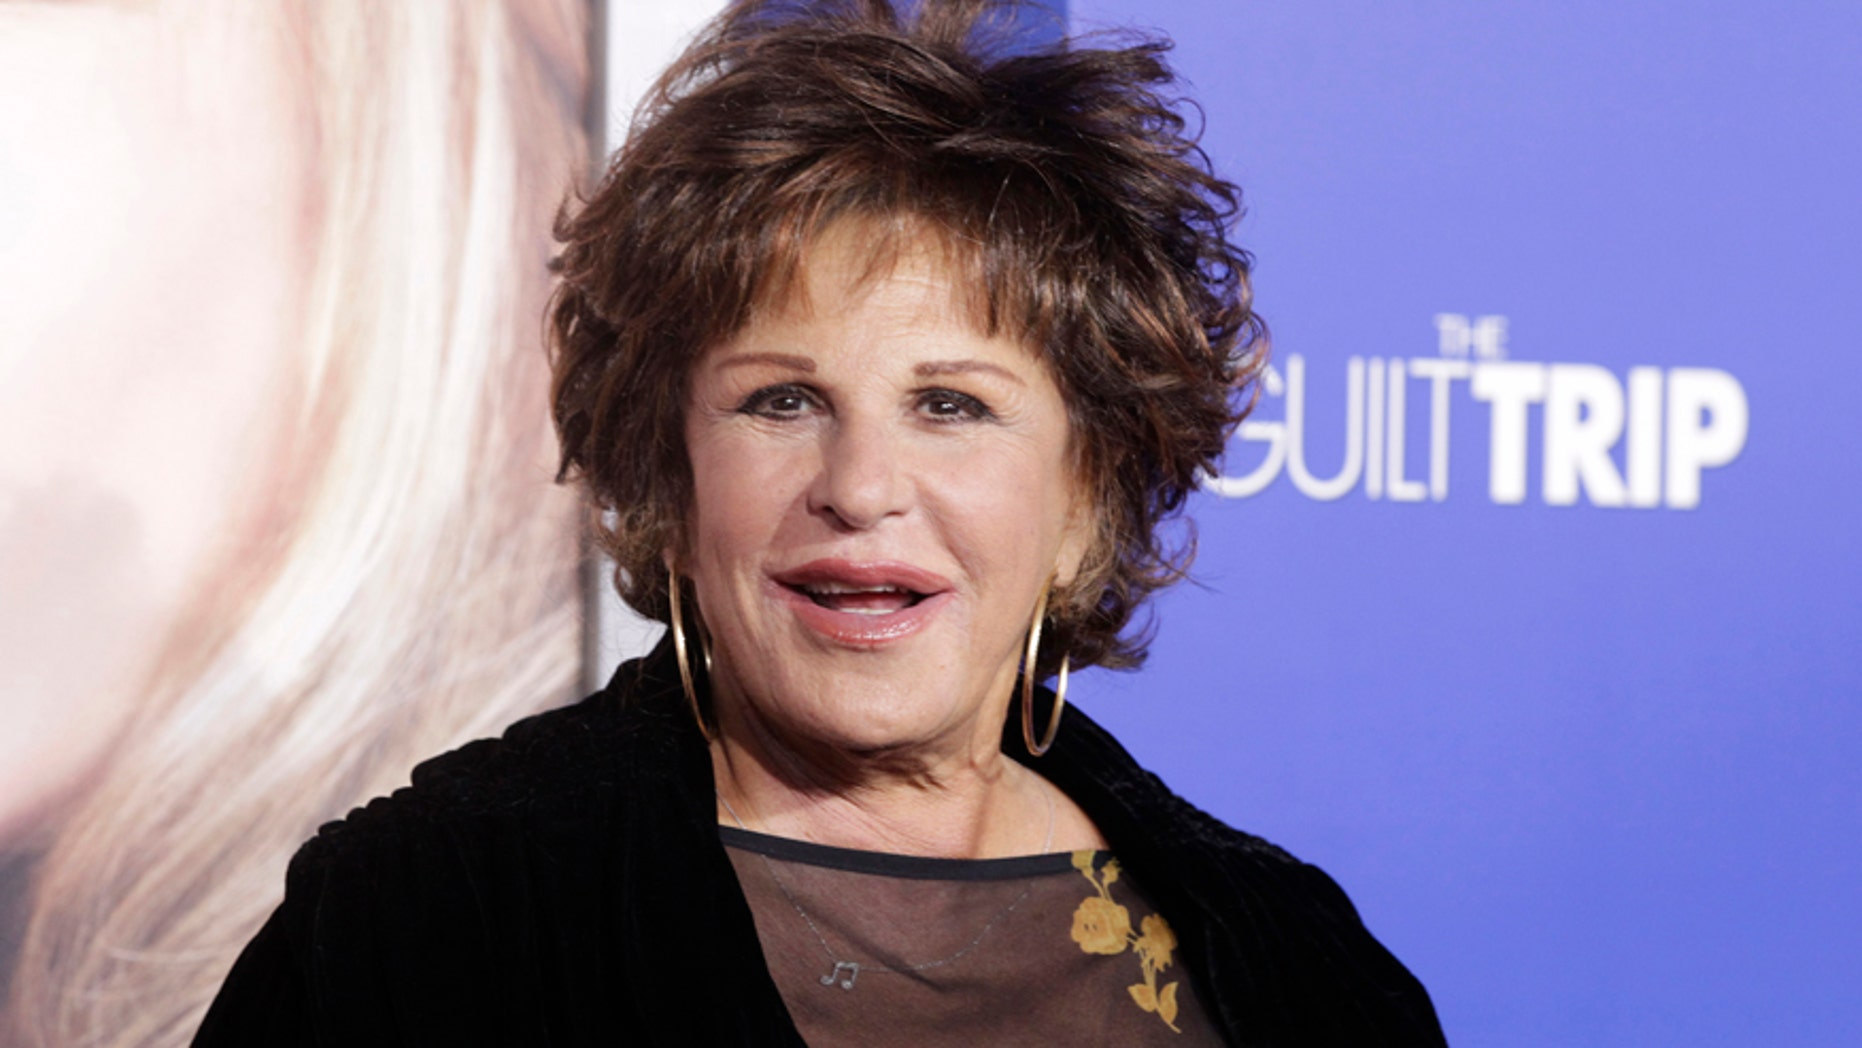 """Singer and actress Lainie Kazan arrives at the premiere of """"The Guilt Trip"""" starring Barbra Streisand and Seth Rogen in Los Angeles December 11, 2012."""